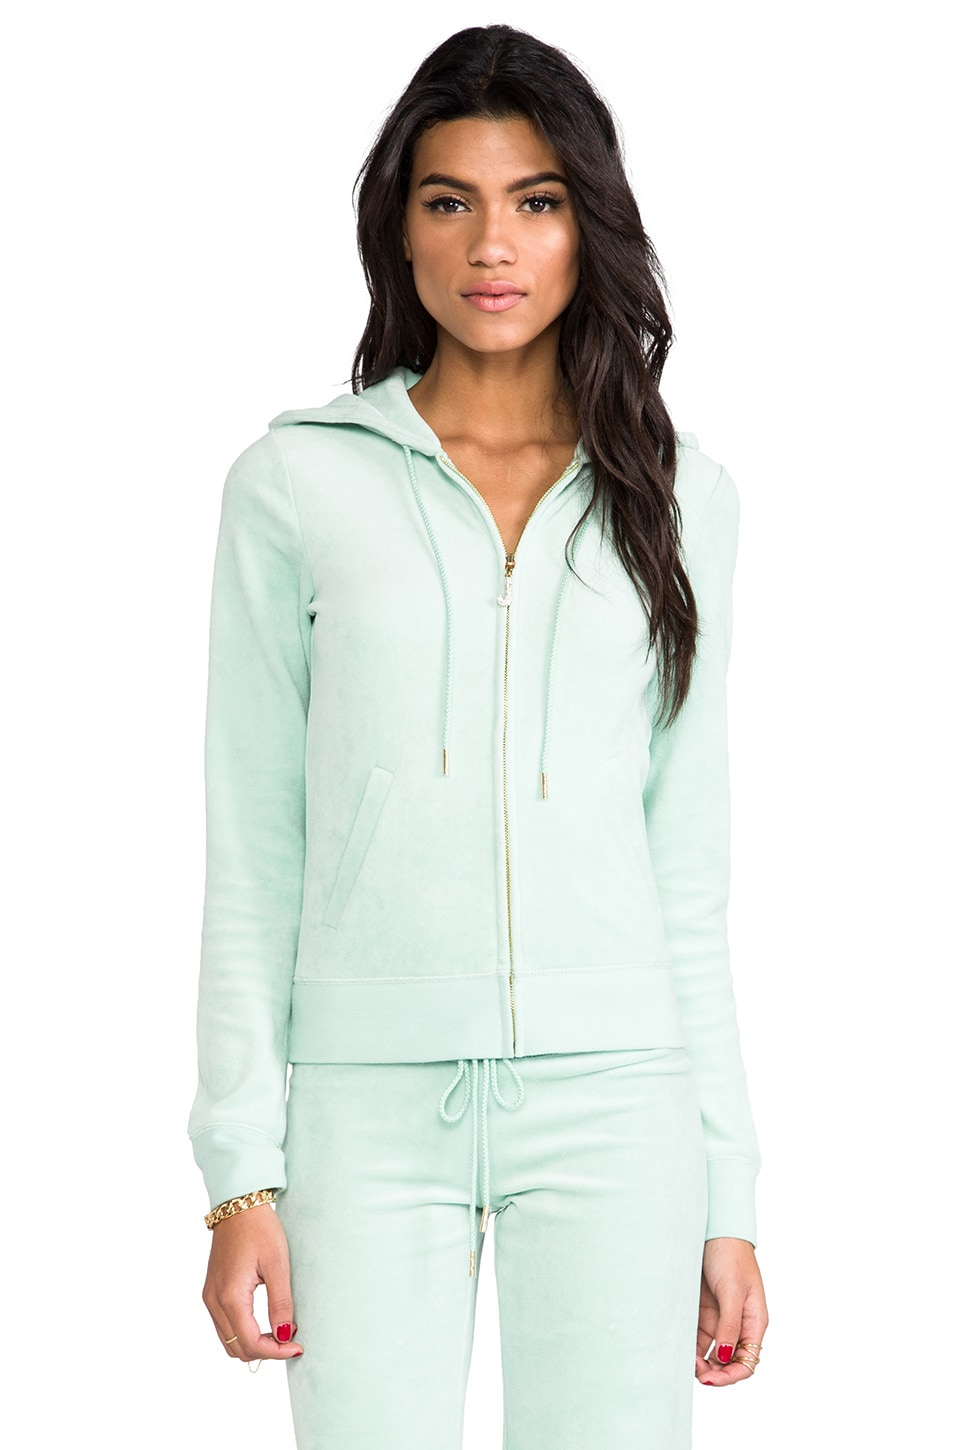 Juicy Couture J Bling Hoodie in Aqua Glass